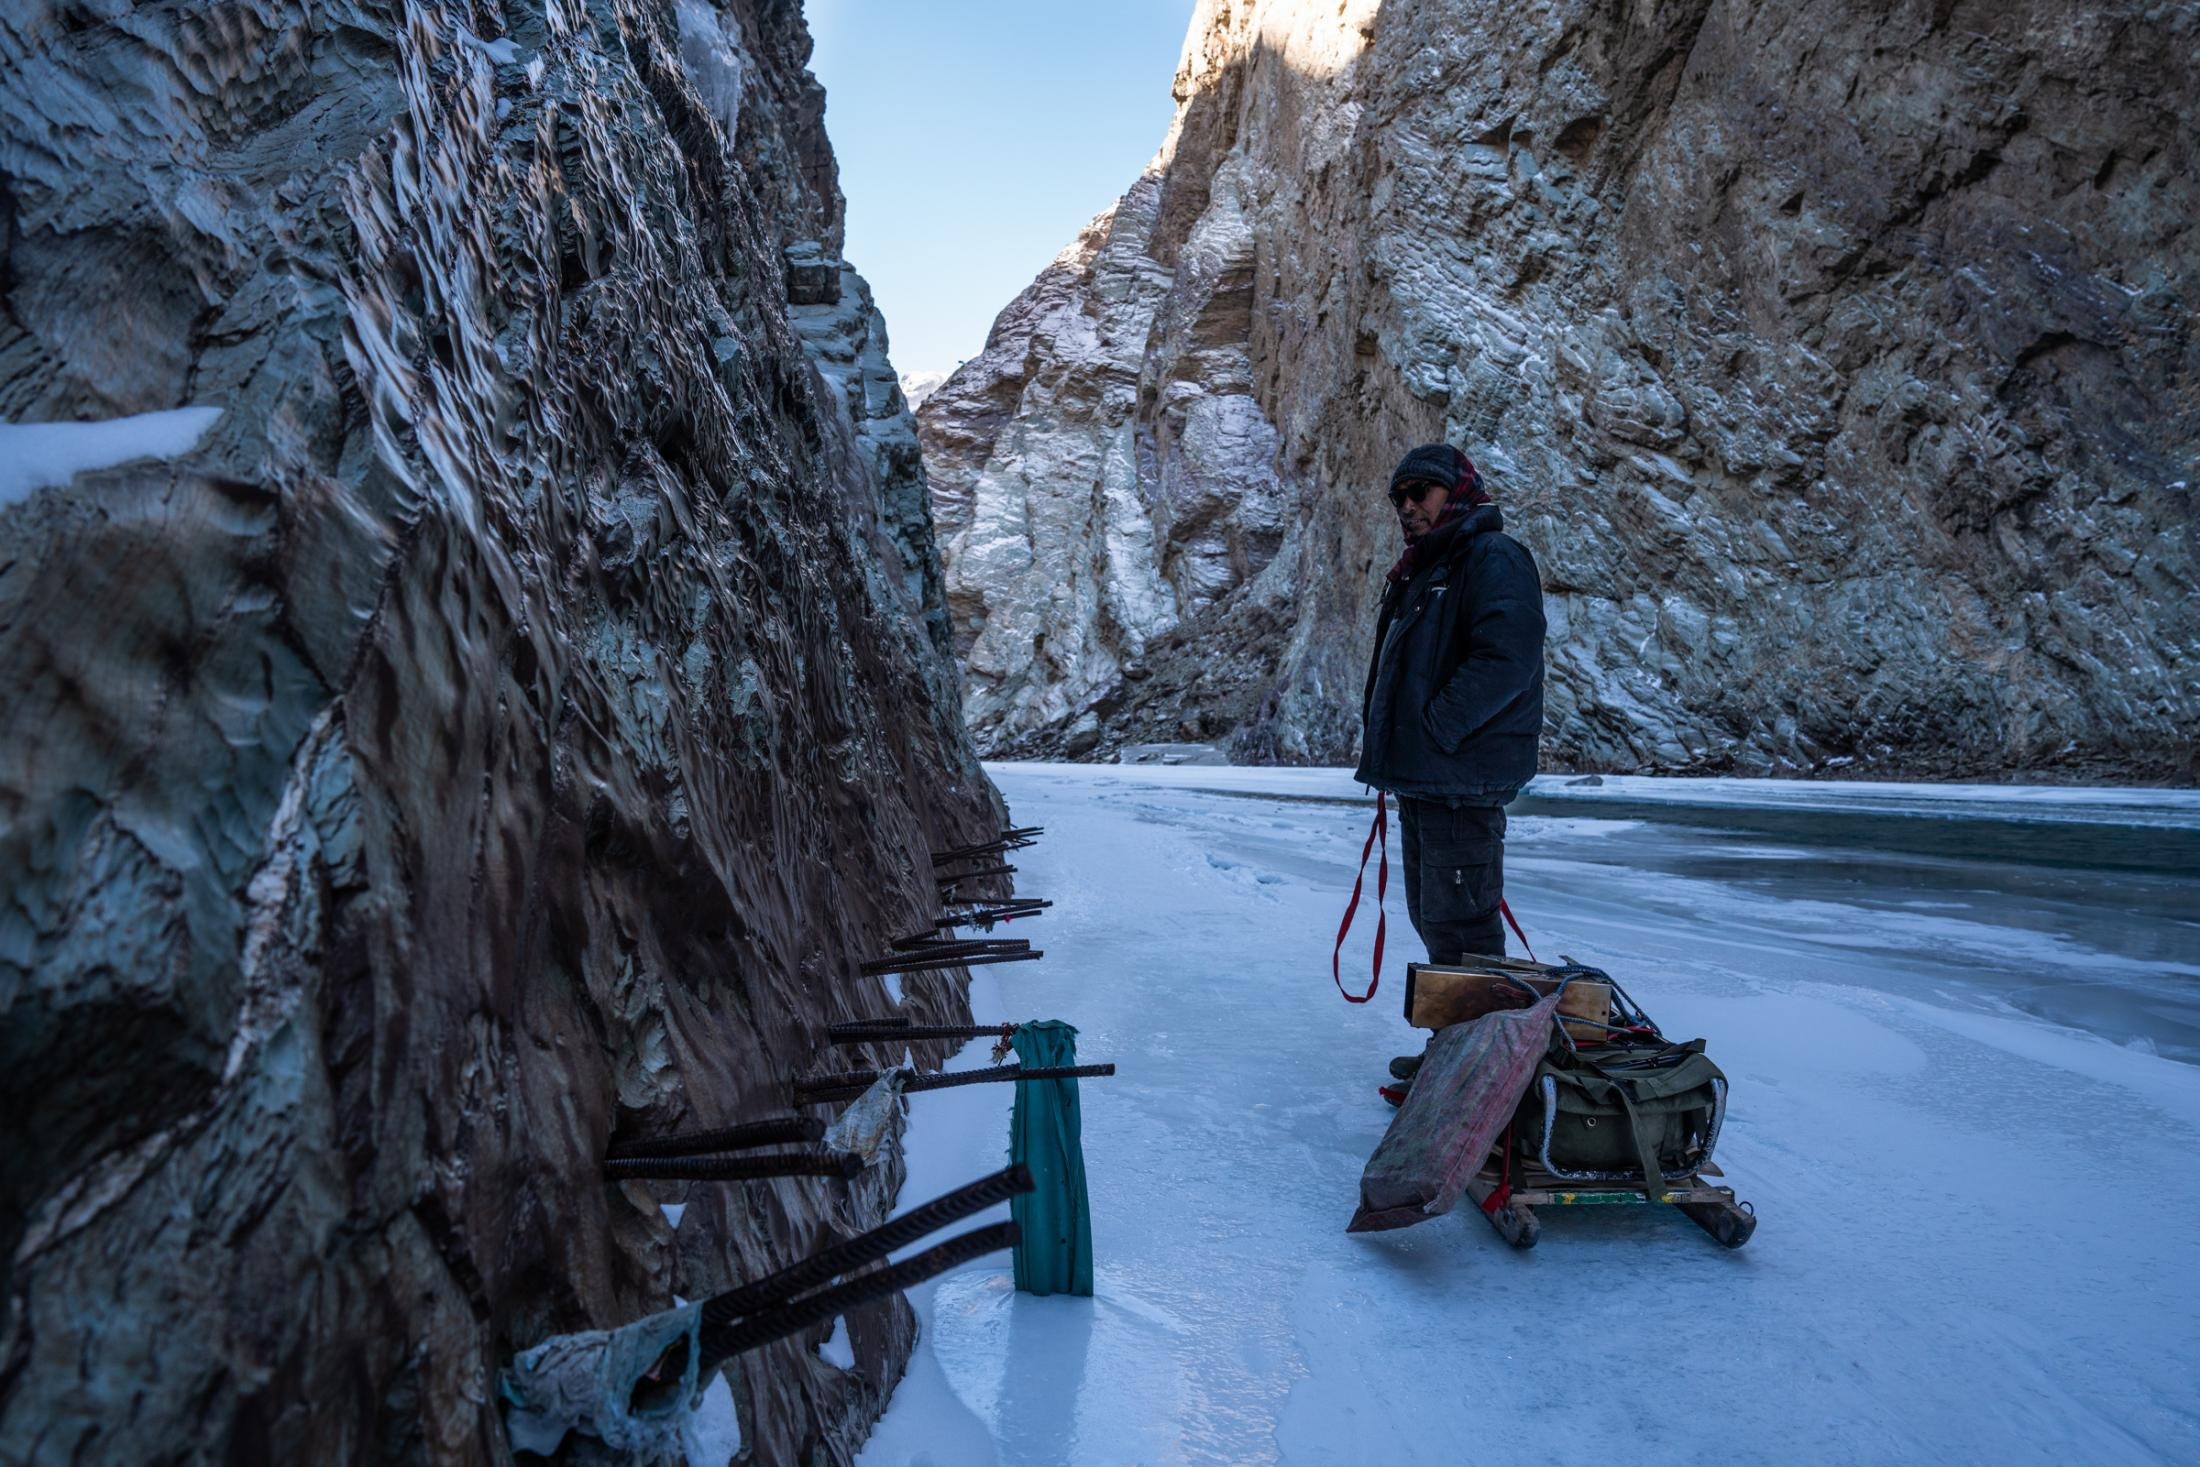 A section of what locals call Wama (translating to 'only a fox can cross'). This section is the most notorious on the journey to Zanskar, as it is regularly broken. These poles were installed to be walked on if there is no ice.